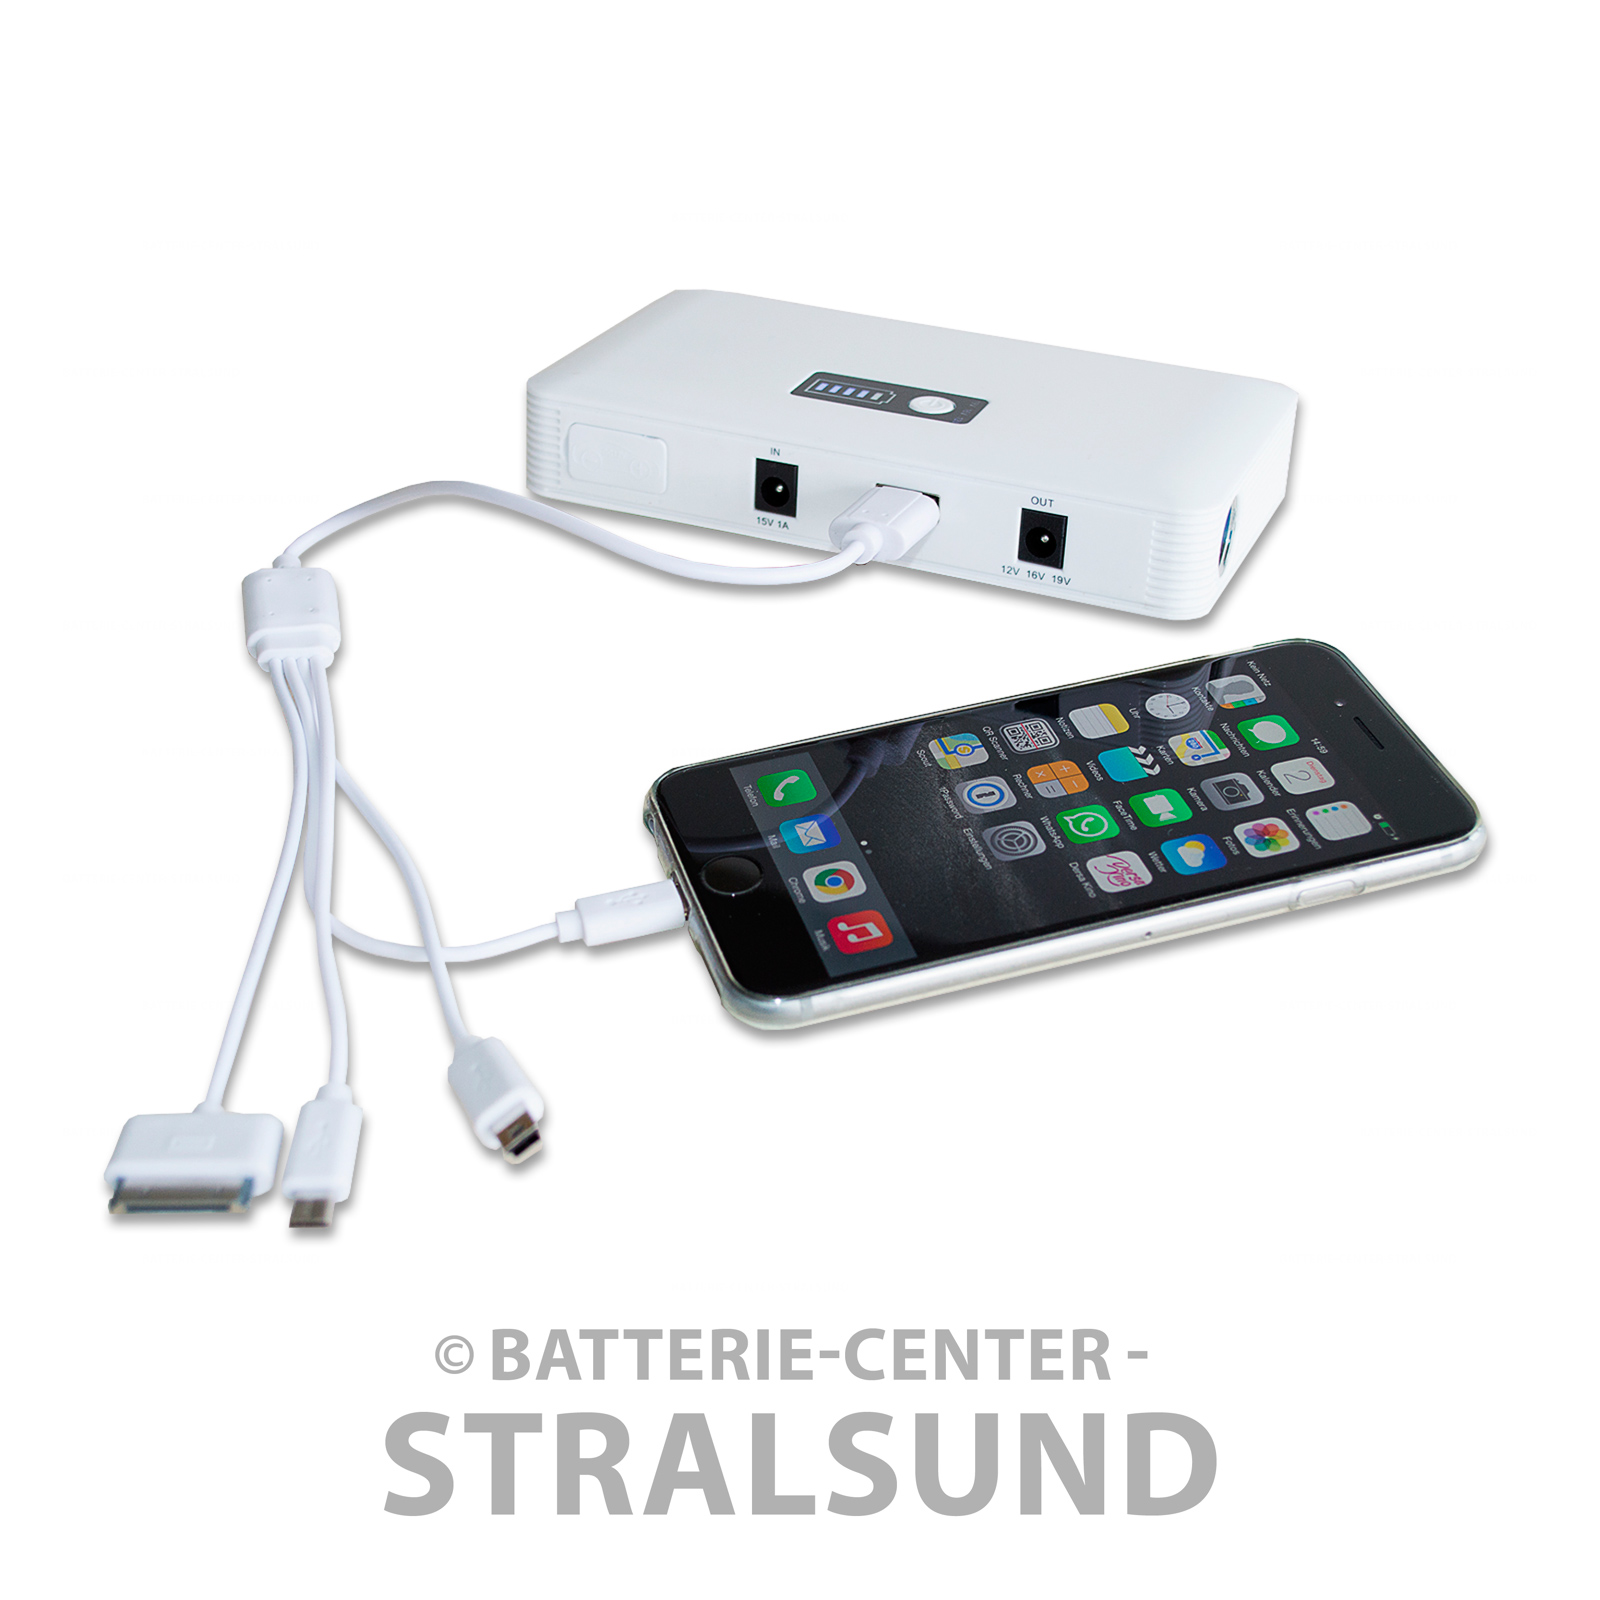 powerbank mit starthilfe powerbank mit kfz starthilfe mah. Black Bedroom Furniture Sets. Home Design Ideas